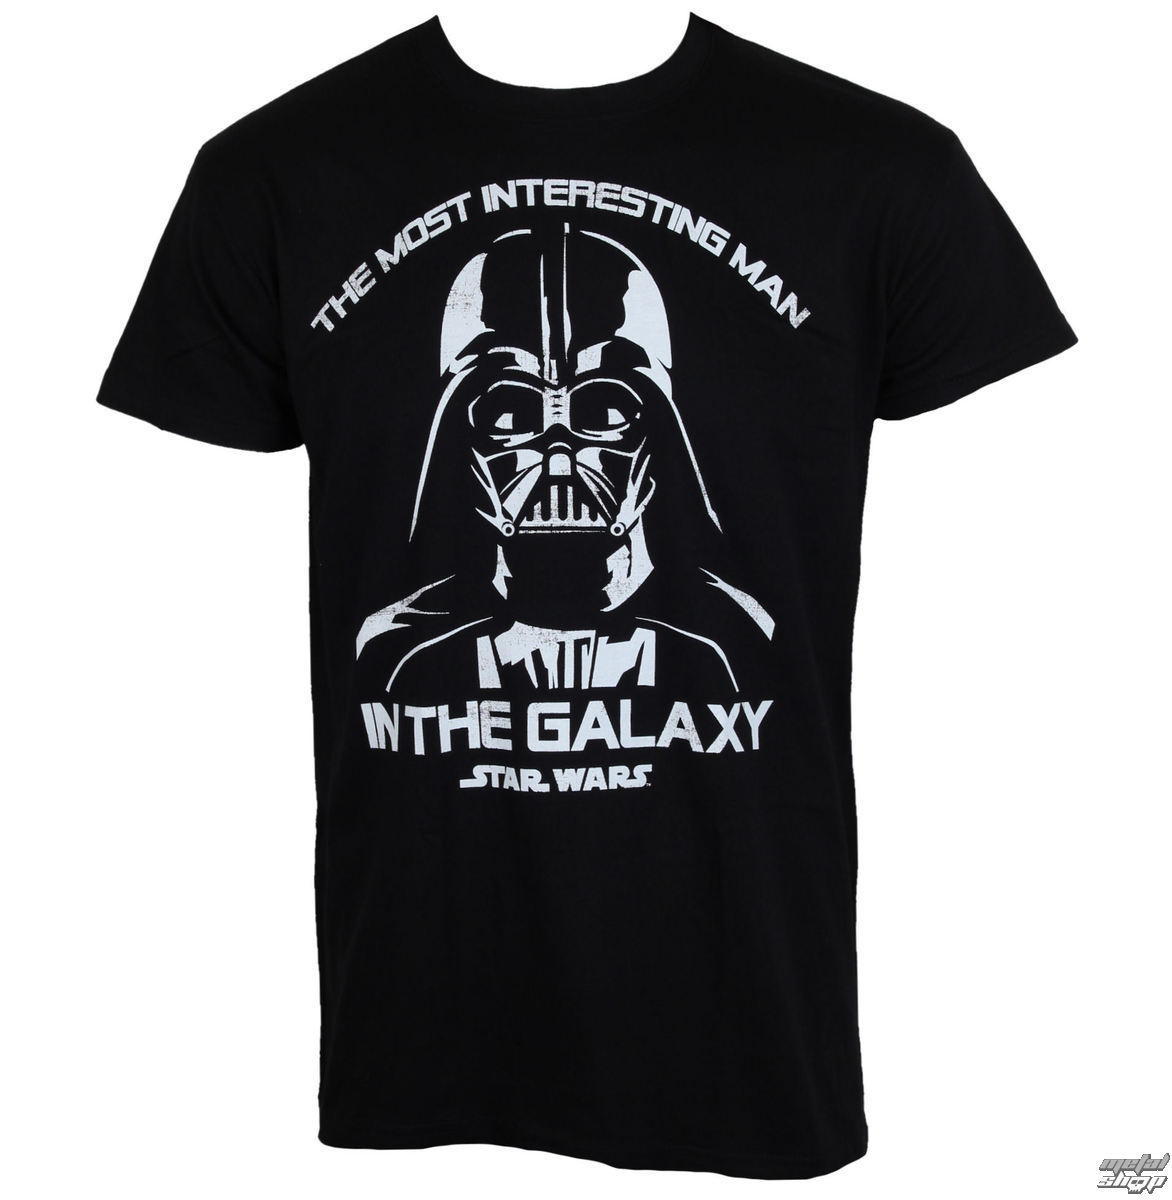 tričko pánské Star Wars - The Most Interesting Man In The Galaxy - Black - HYBRIS - LF-1-SW021-H38-10-BK